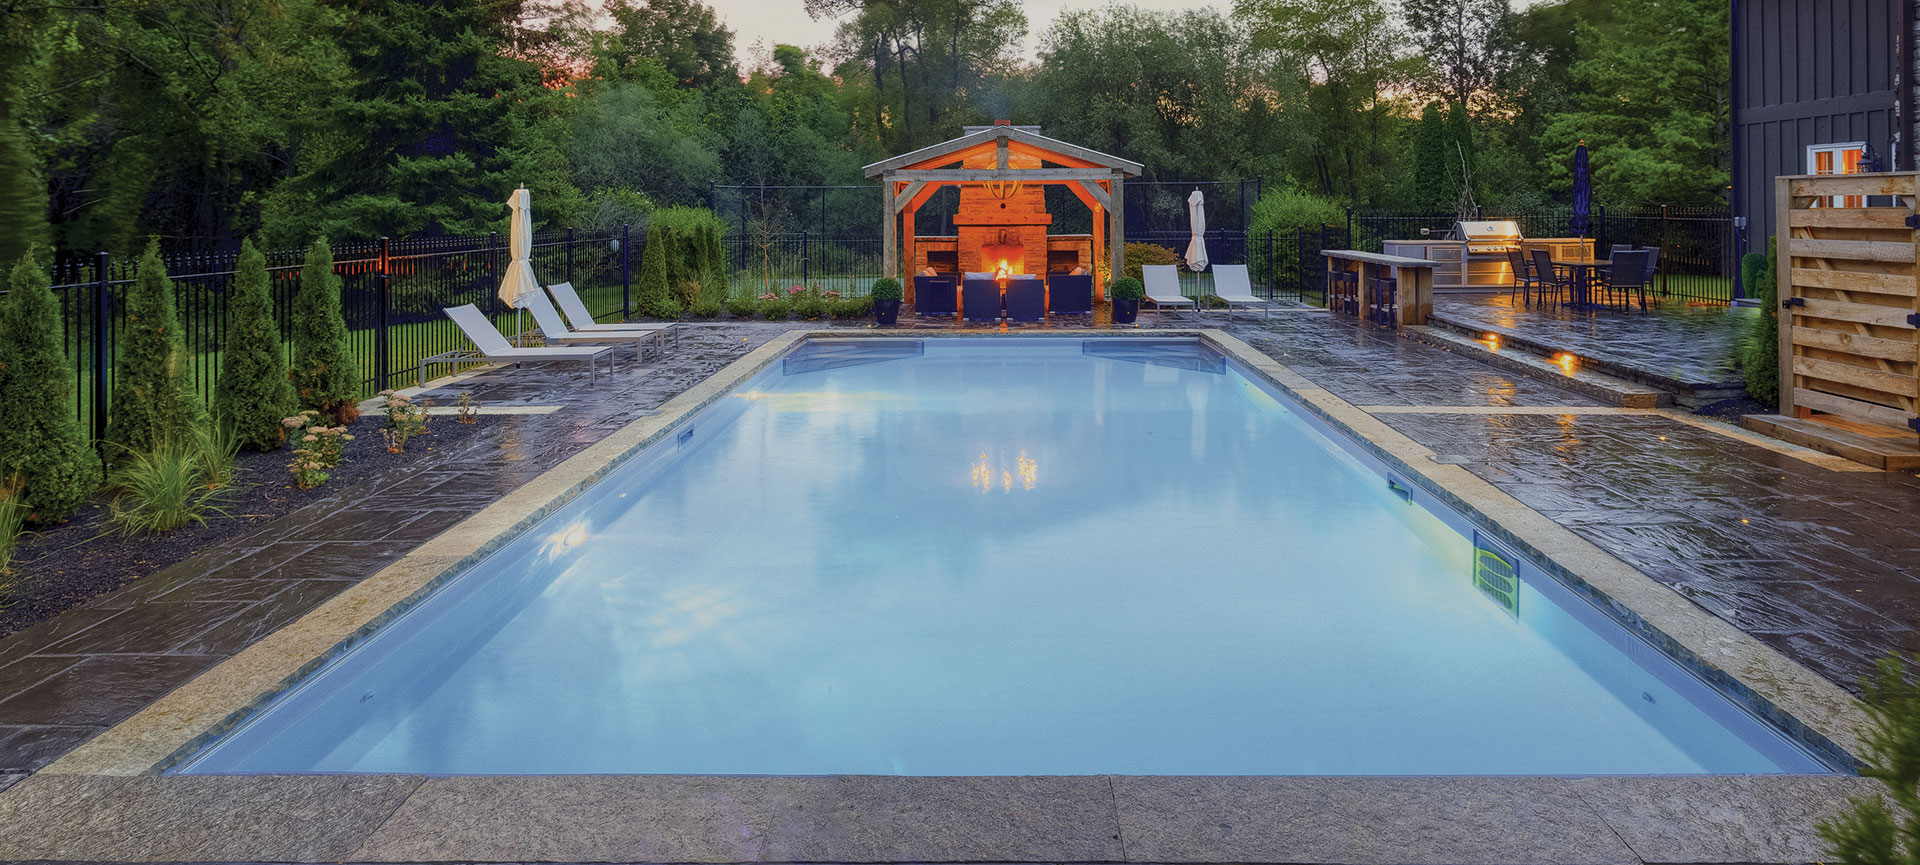 Blue diamond inground pools and landscaping video thumb solutioingenieria Image collections